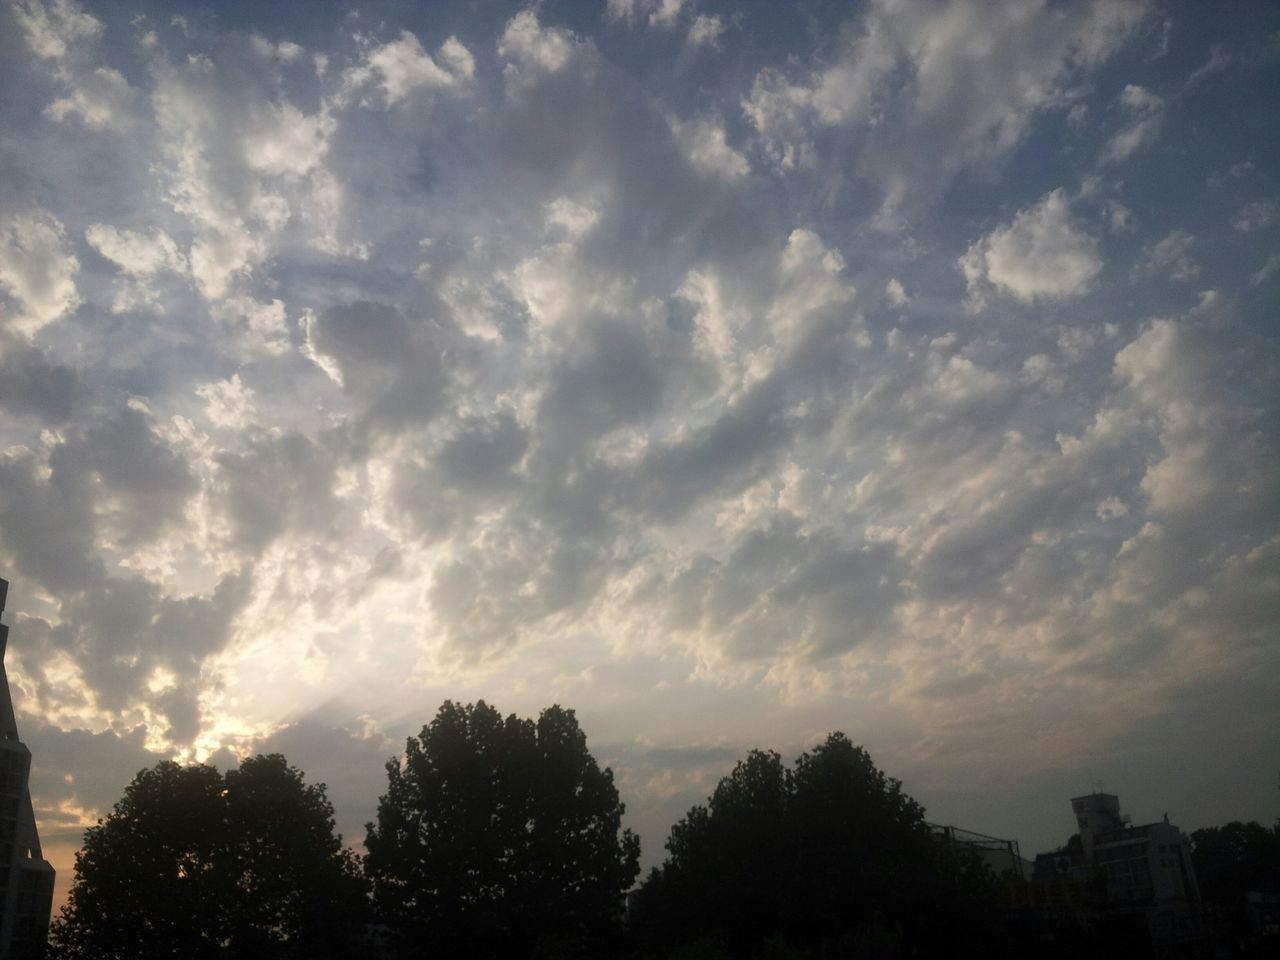 tree, sky, cloud - sky, no people, low angle view, nature, beauty in nature, silhouette, tranquility, outdoors, scenics, day